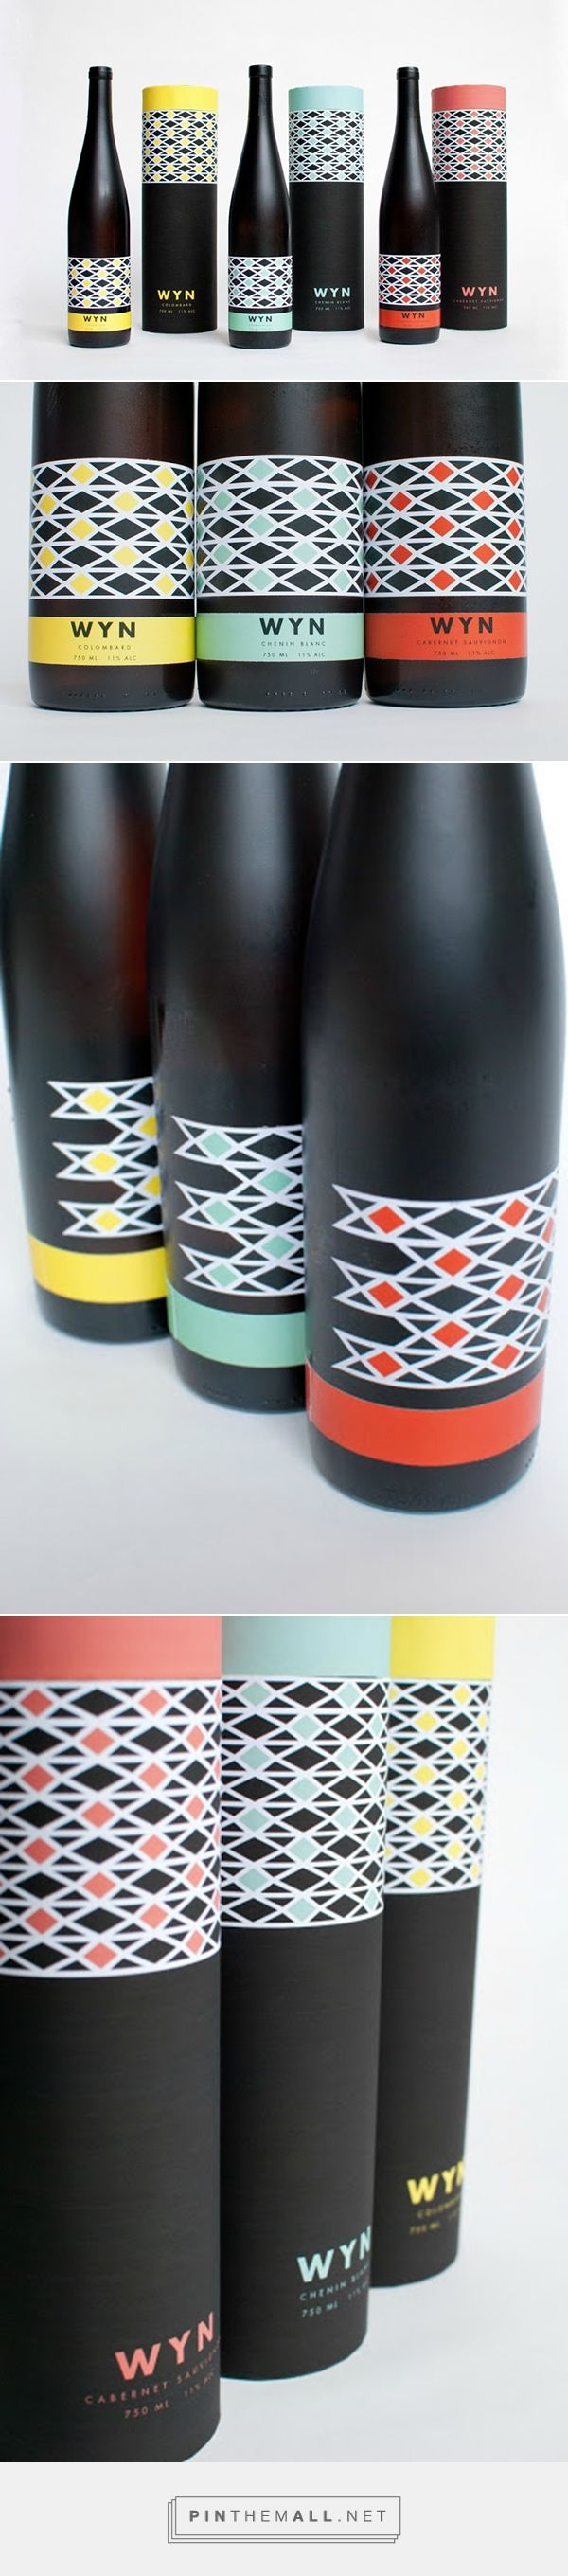 WYN Brand South African Wine Packaging by Brittany Albertson | Fivestar Branding – Design and Branding Agency & Inspiration Gallery